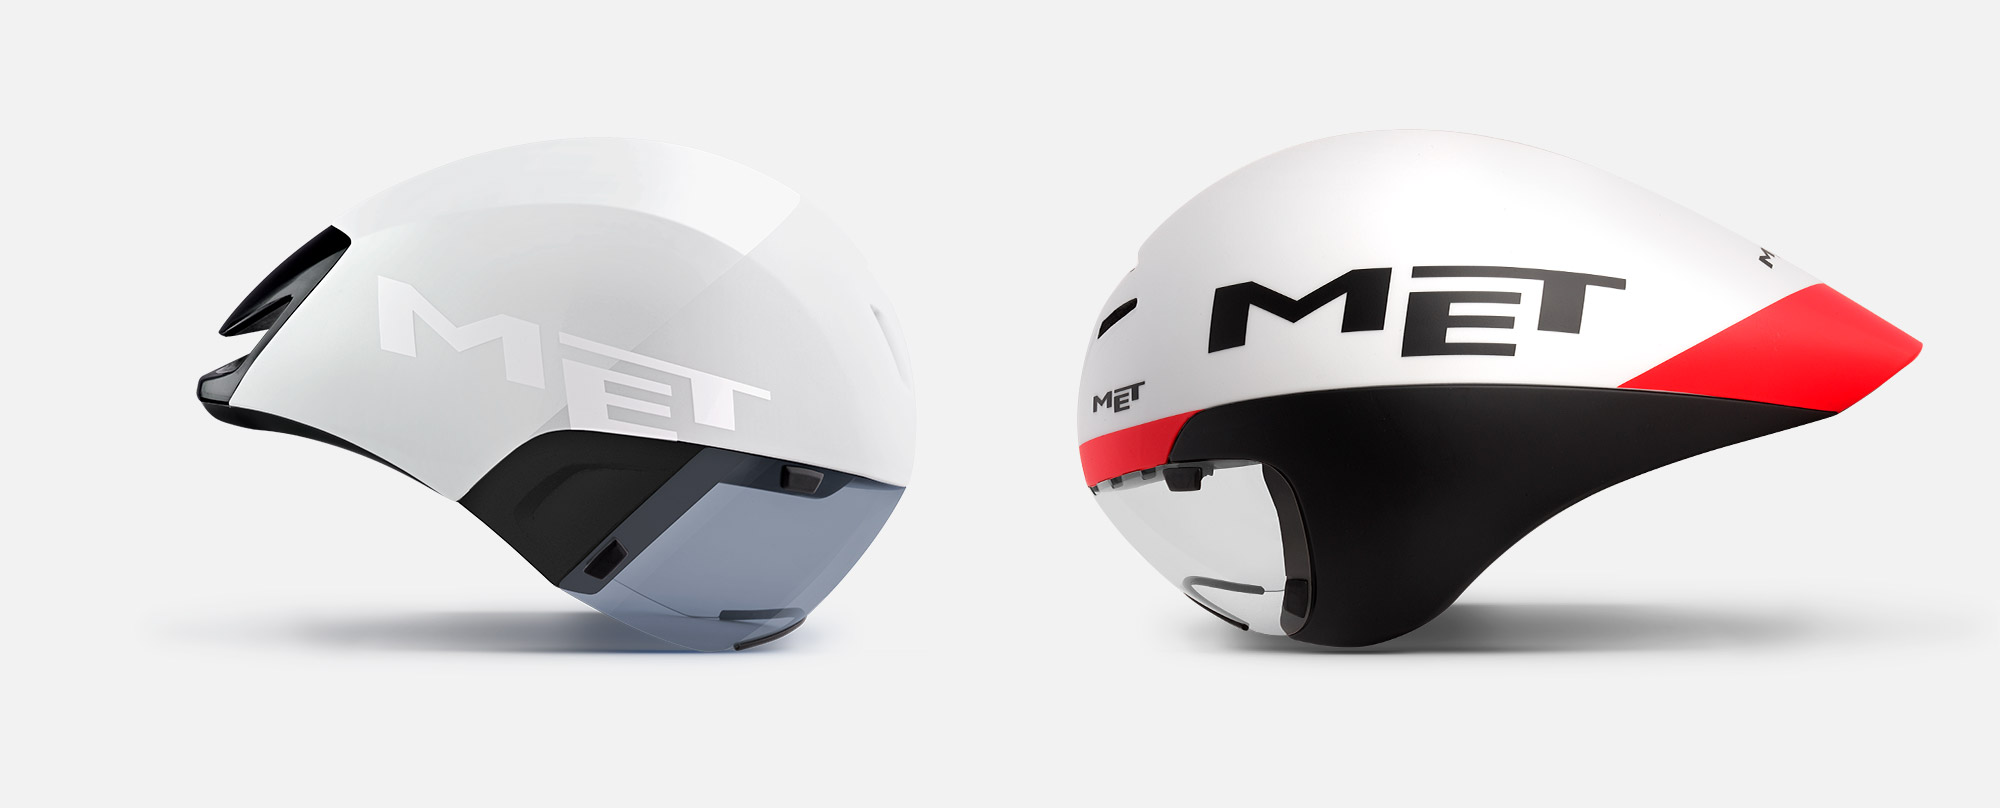 MET Grancorso Urban, E-bike and Commuting Helmet